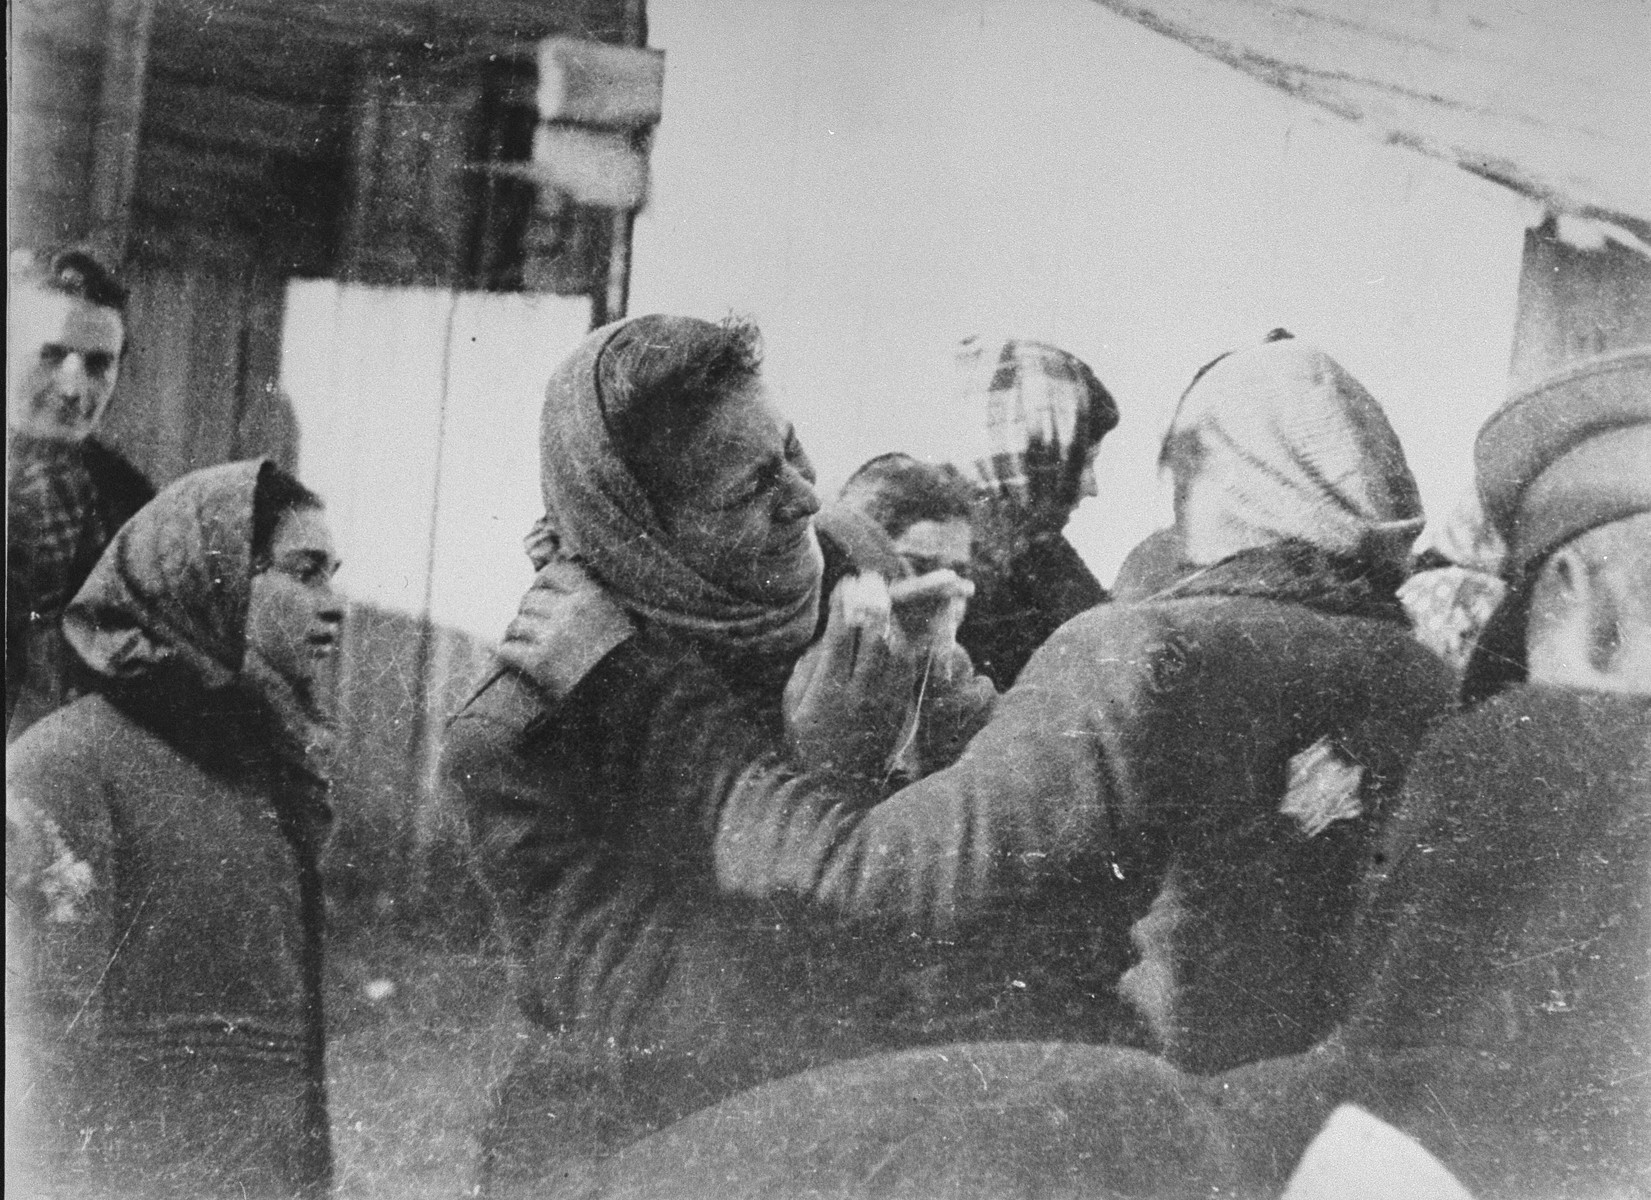 Two women bid each other farewell at an assembly point in the Kovno ghetto during a deportation action to Estonia.